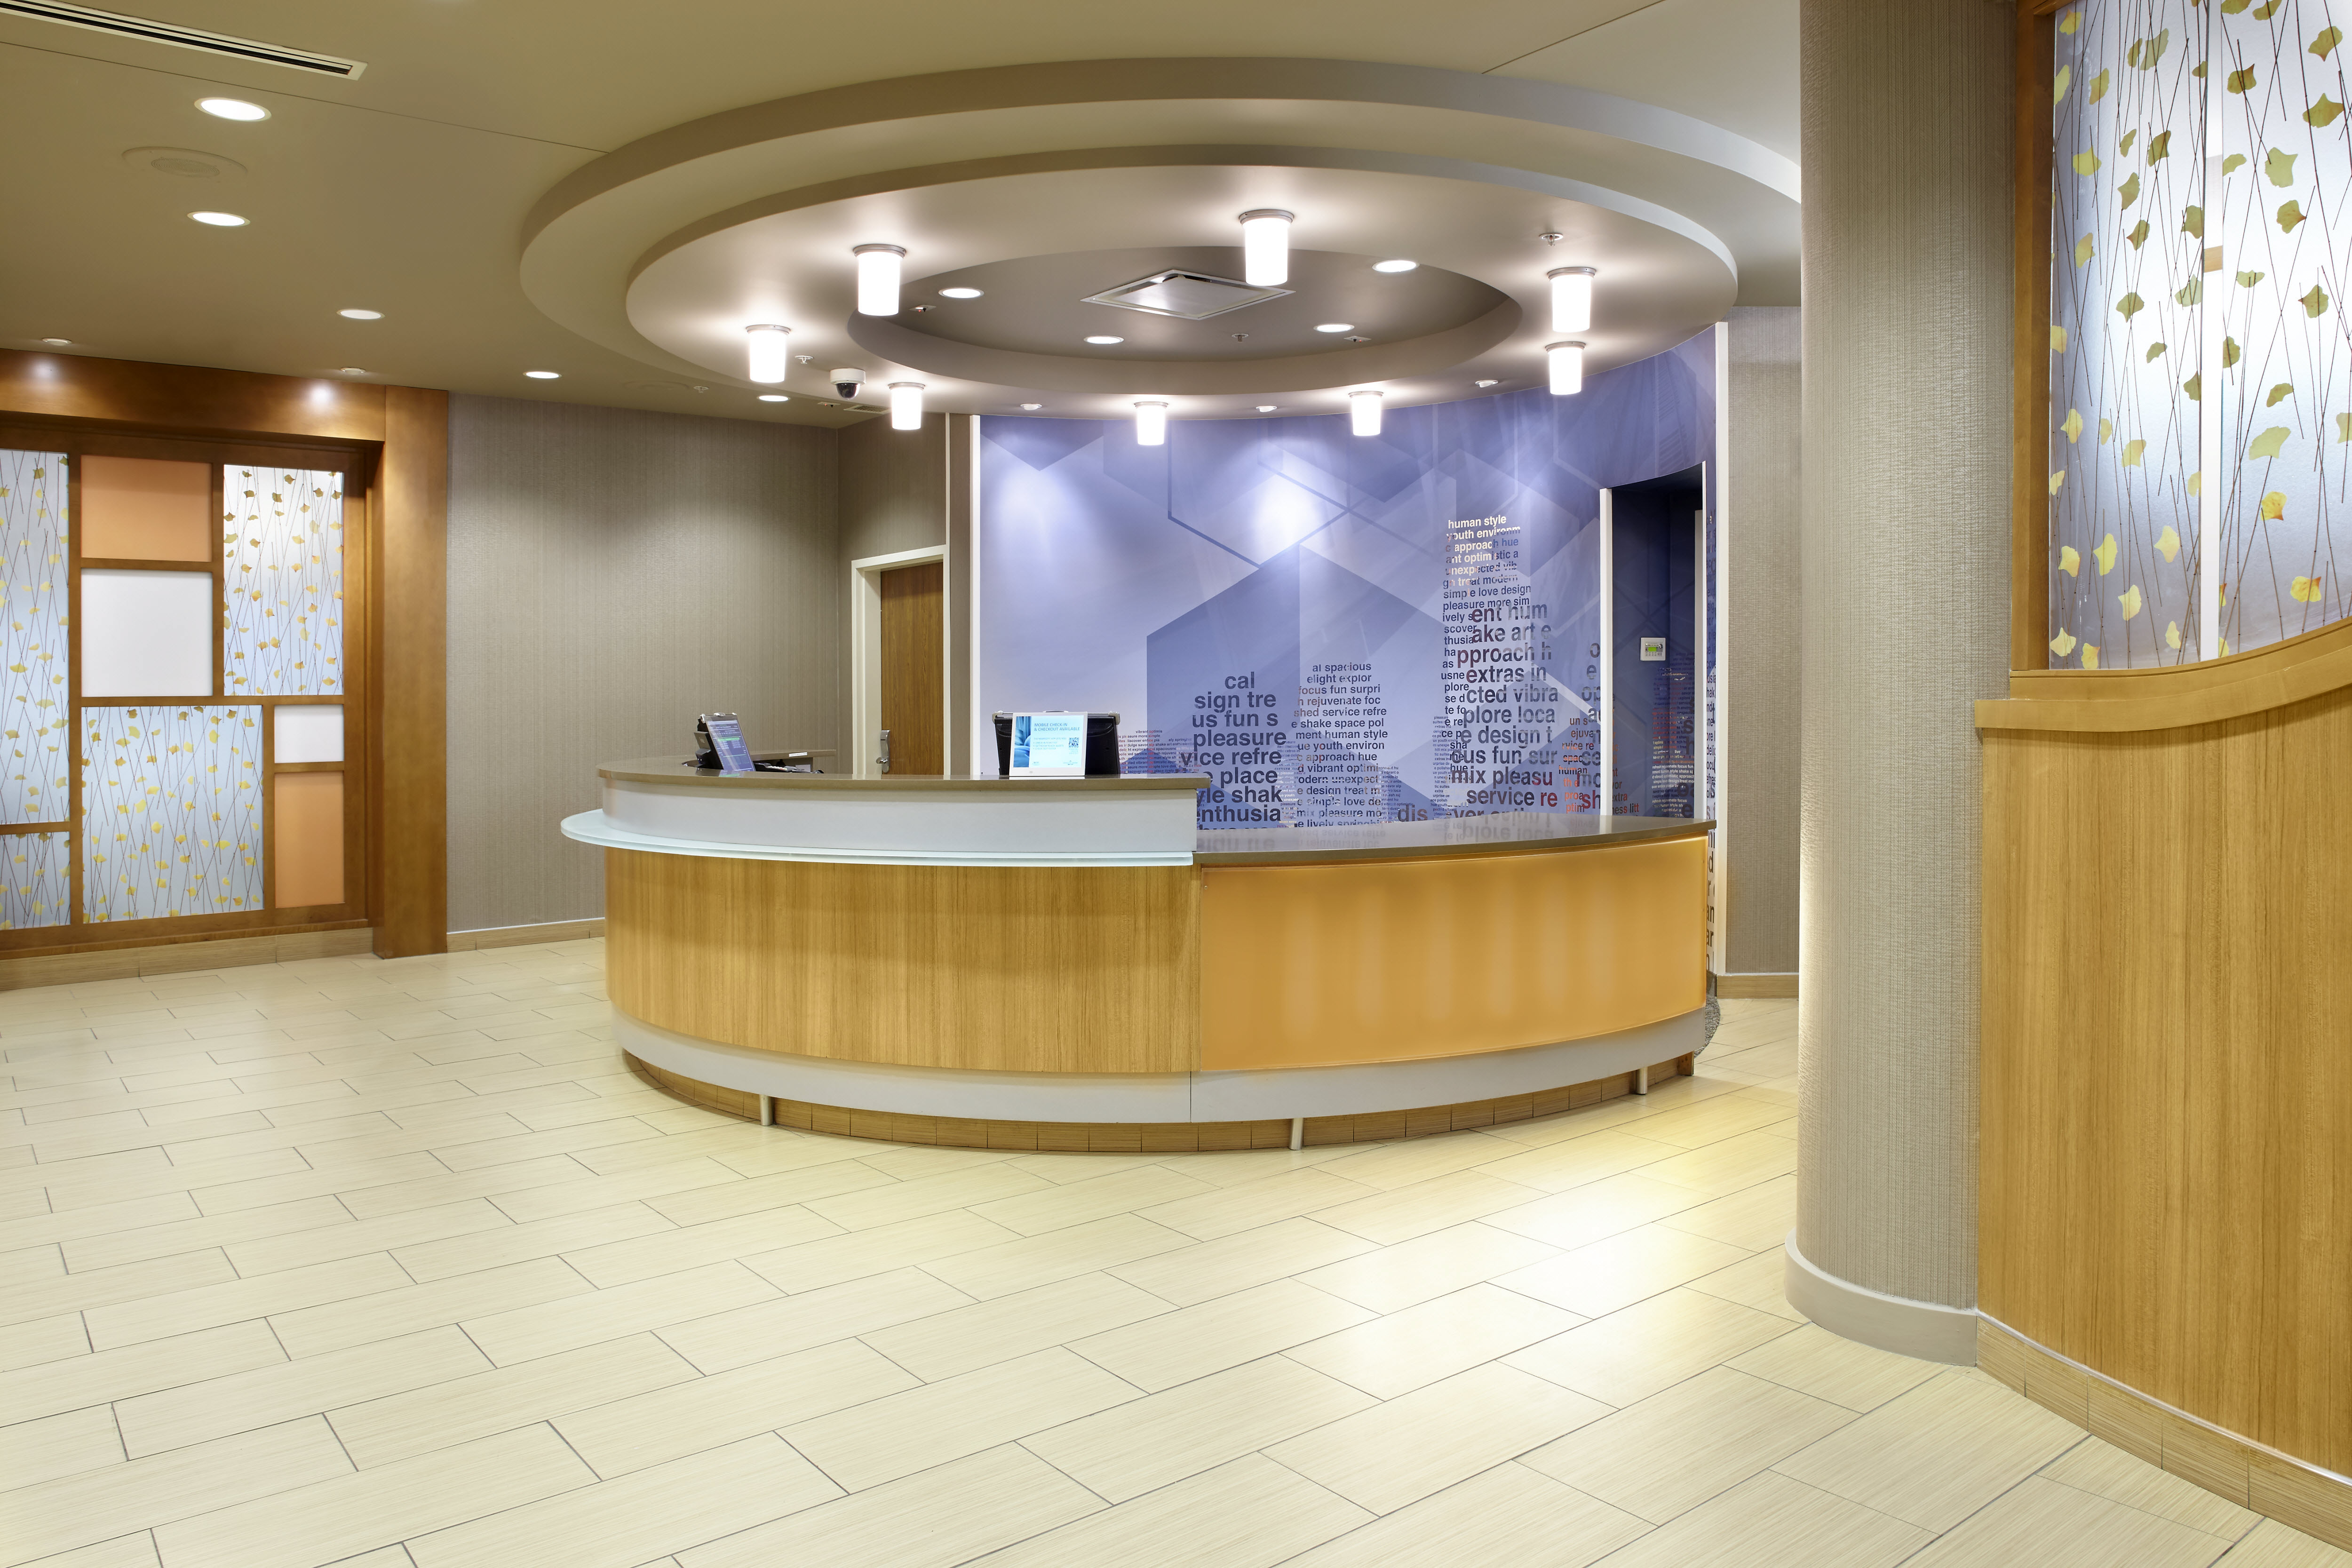 SpringHill Suites by Marriott Chicago Waukegan/Gurnee image 2